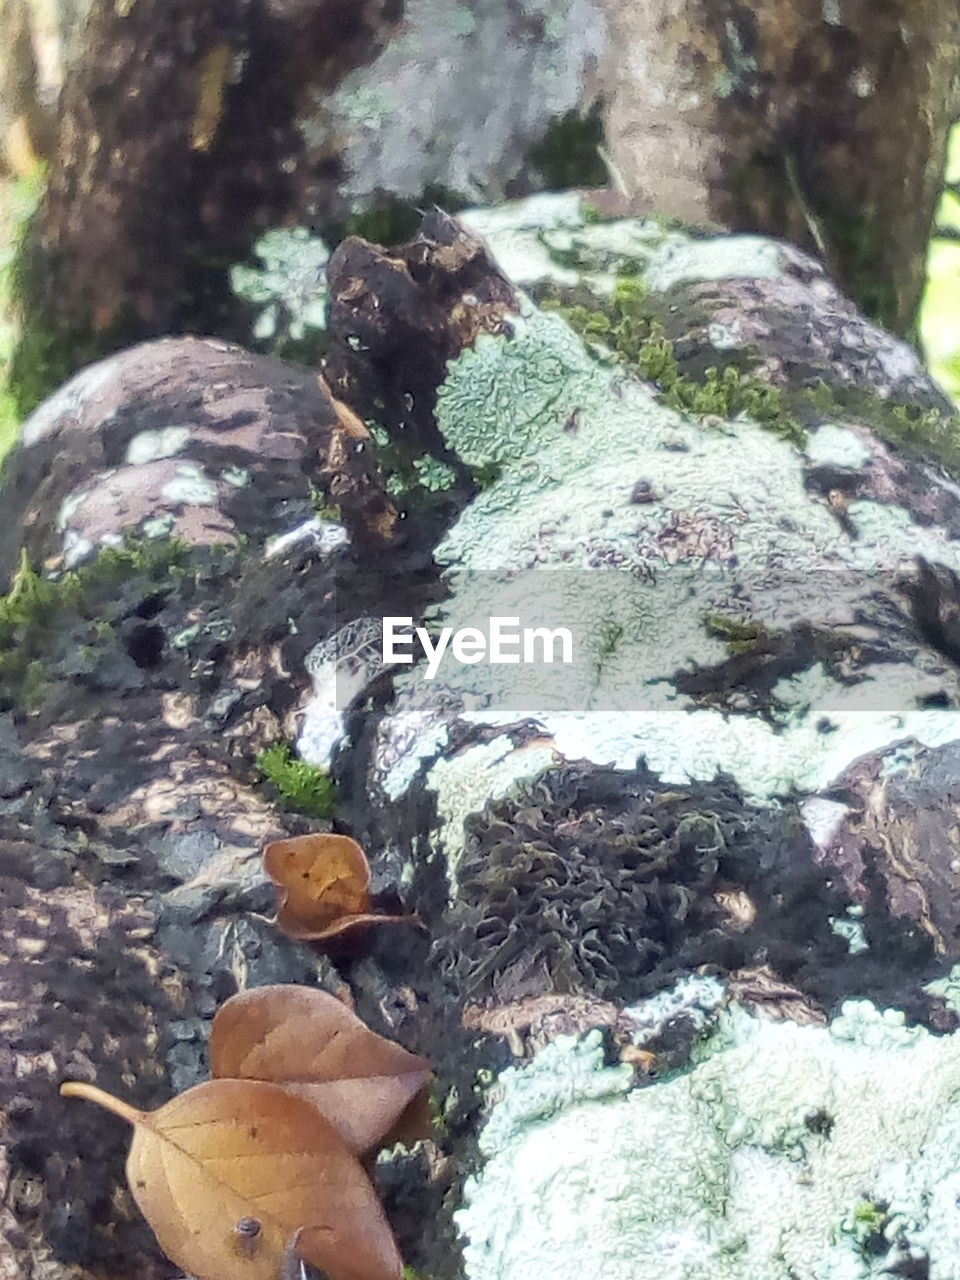 day, rock, nature, leaf, plant, close-up, no people, plant part, rock - object, solid, outdoors, growth, tree, land, beauty in nature, moss, falling, forest, high angle view, focus on foreground, change, leaves, bark, toadstool